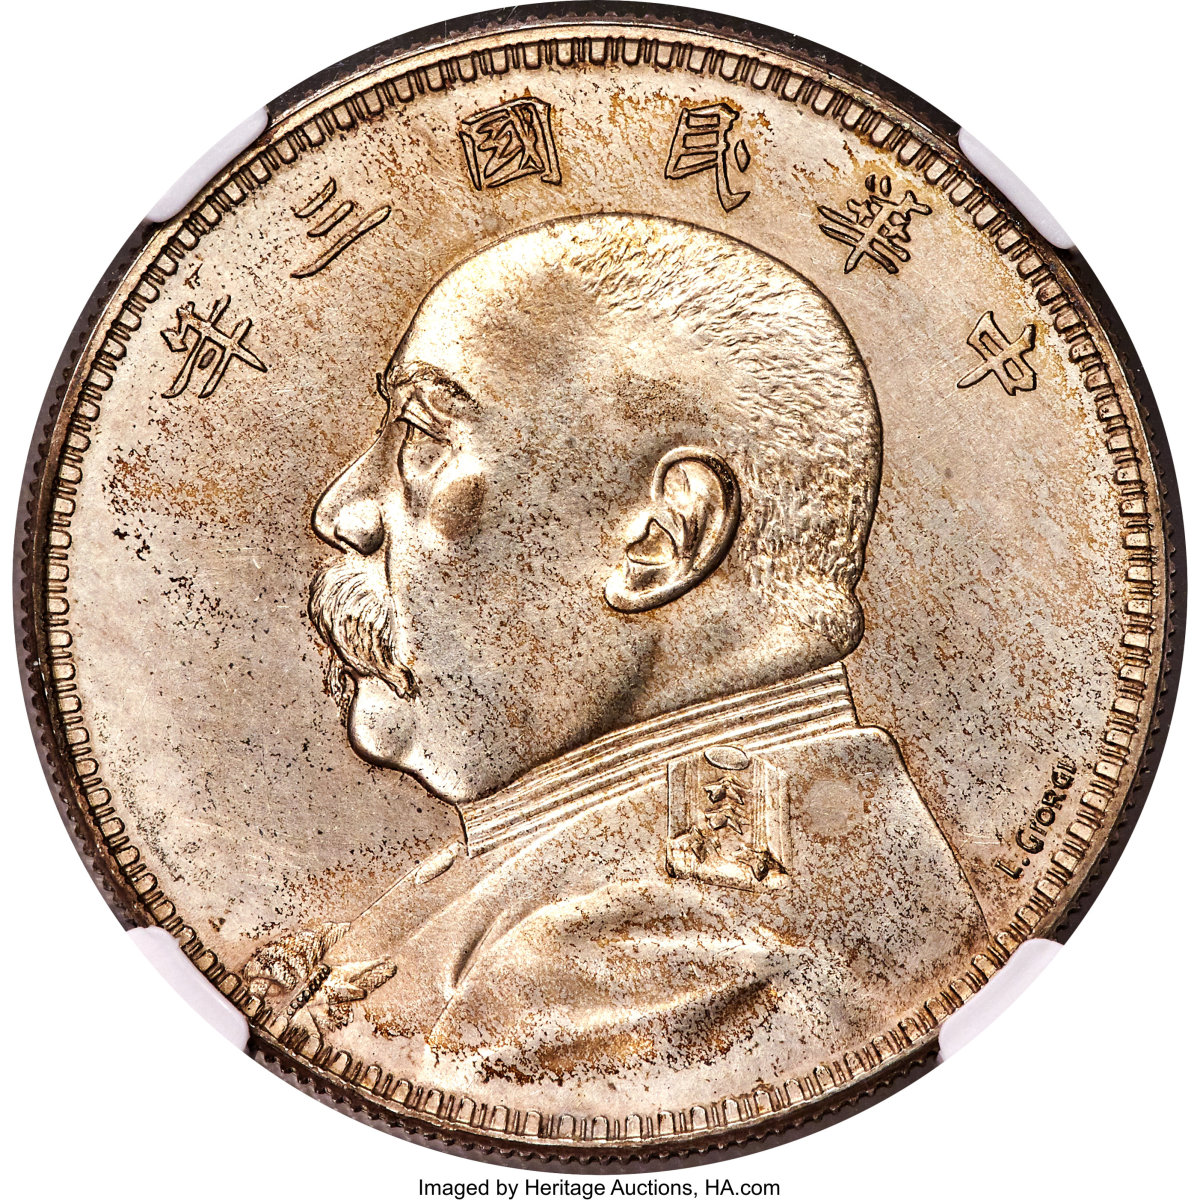 Sought-after Yuan Shih-kai Year 3 (1914) Chinese pattern silver dollar signed behind shoulder by Luigi Giorgi (KM-Pn31). It was bid up to $132,000. Images courtesy and © www.ha.com.